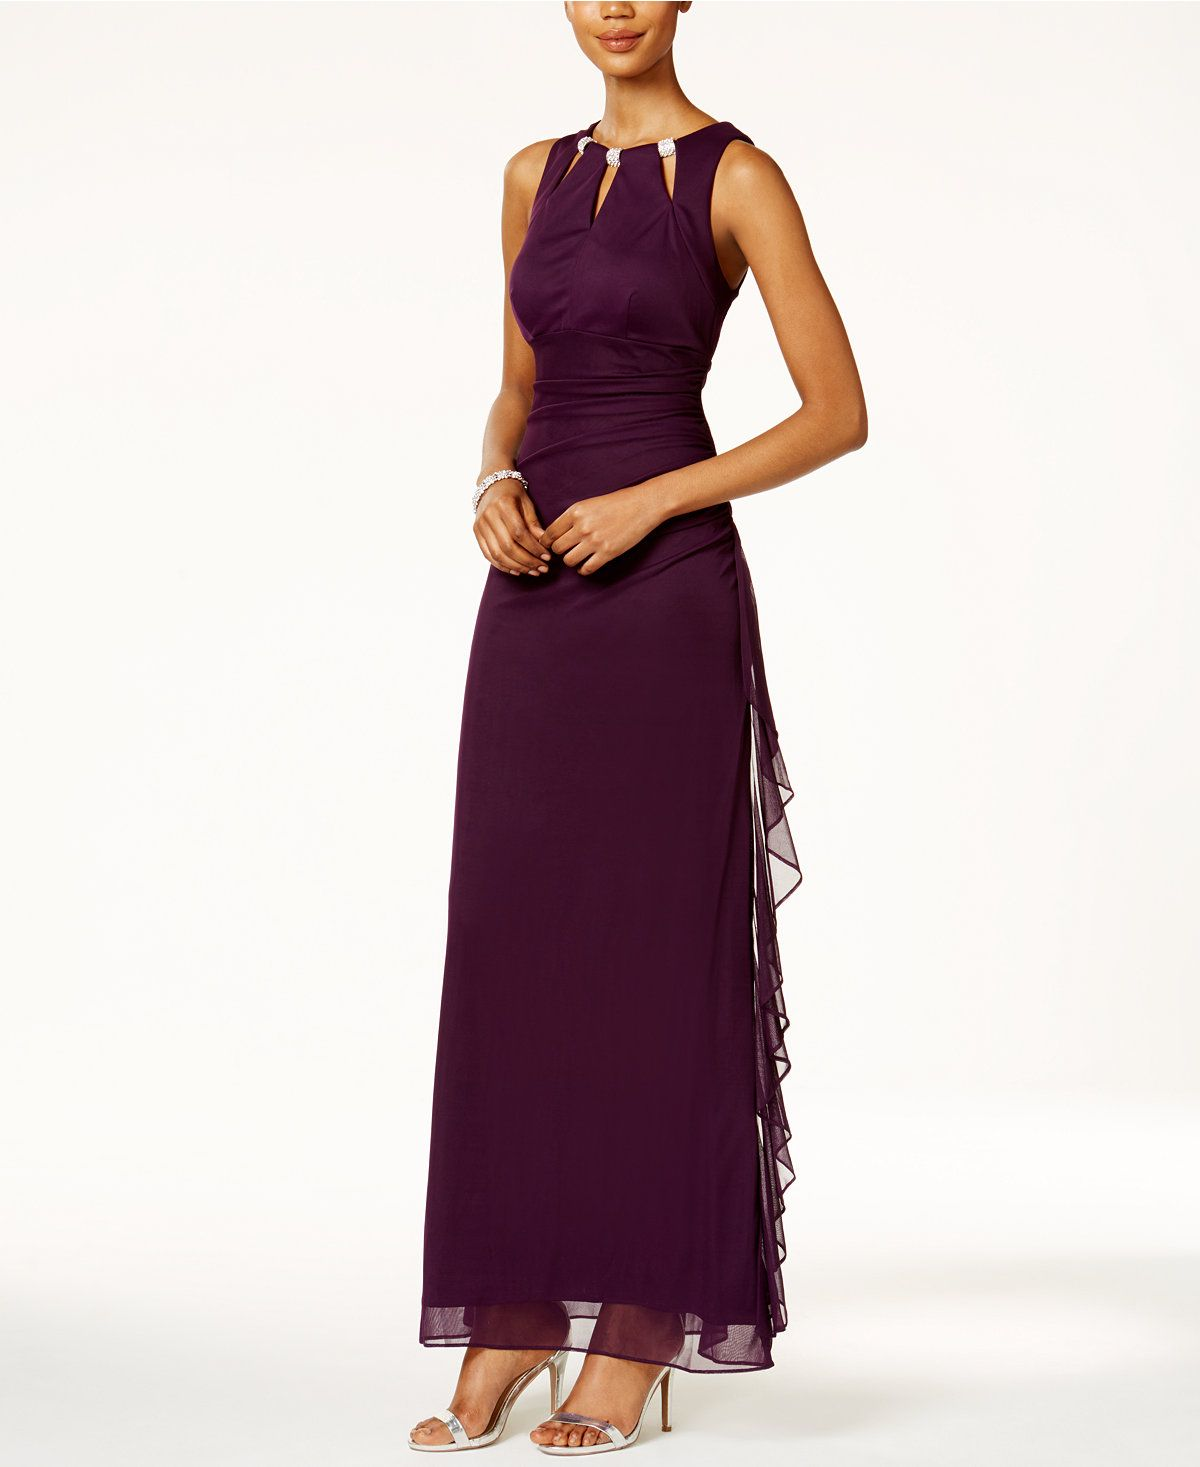 Macy's party dresses weddings  BuA by Betsy and Adam Embellished Keyhole Ruched Gown  Dresses